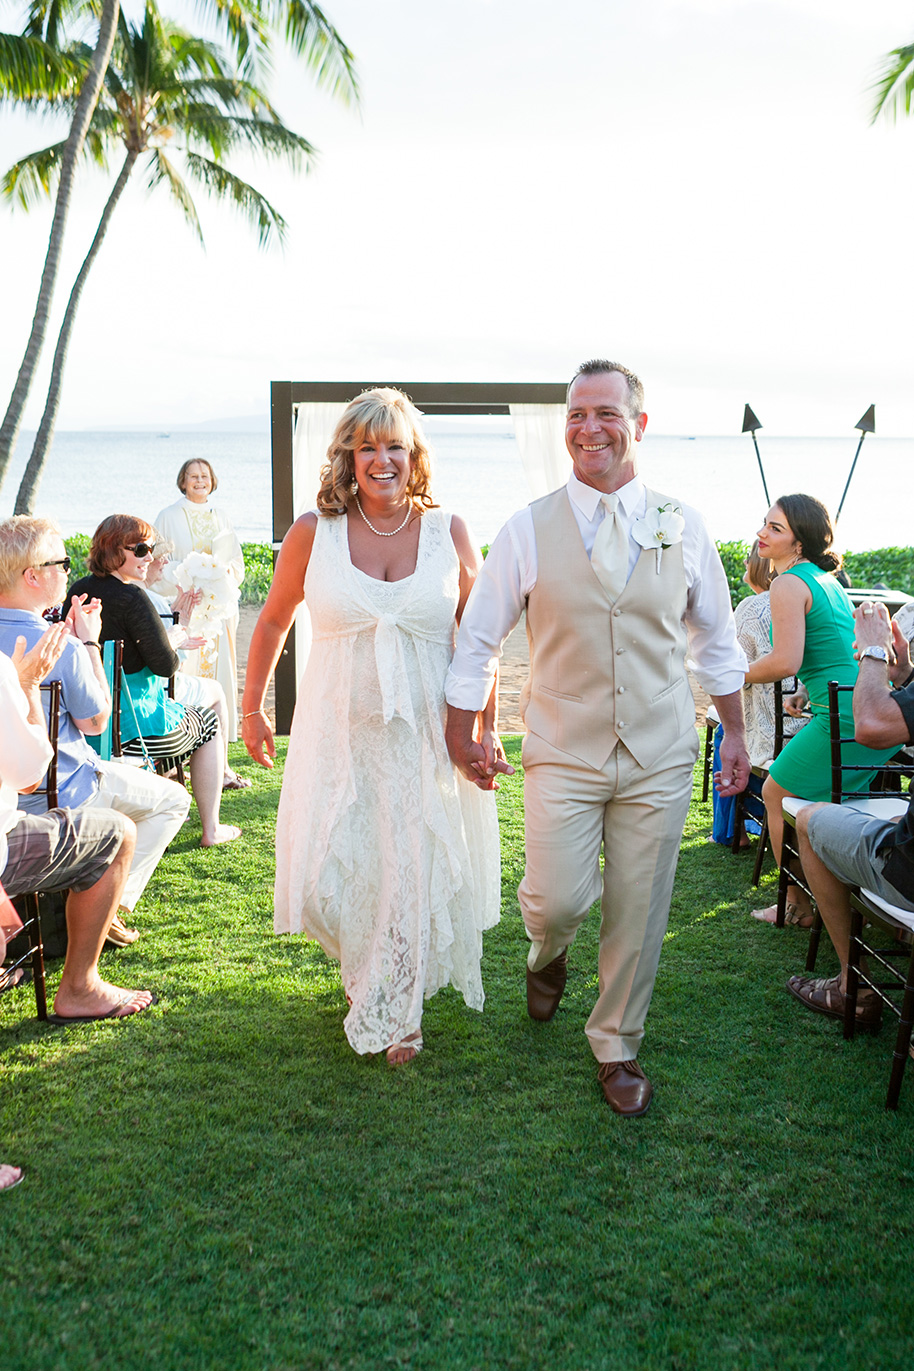 Maui-Beachside-Wedding-042916-19